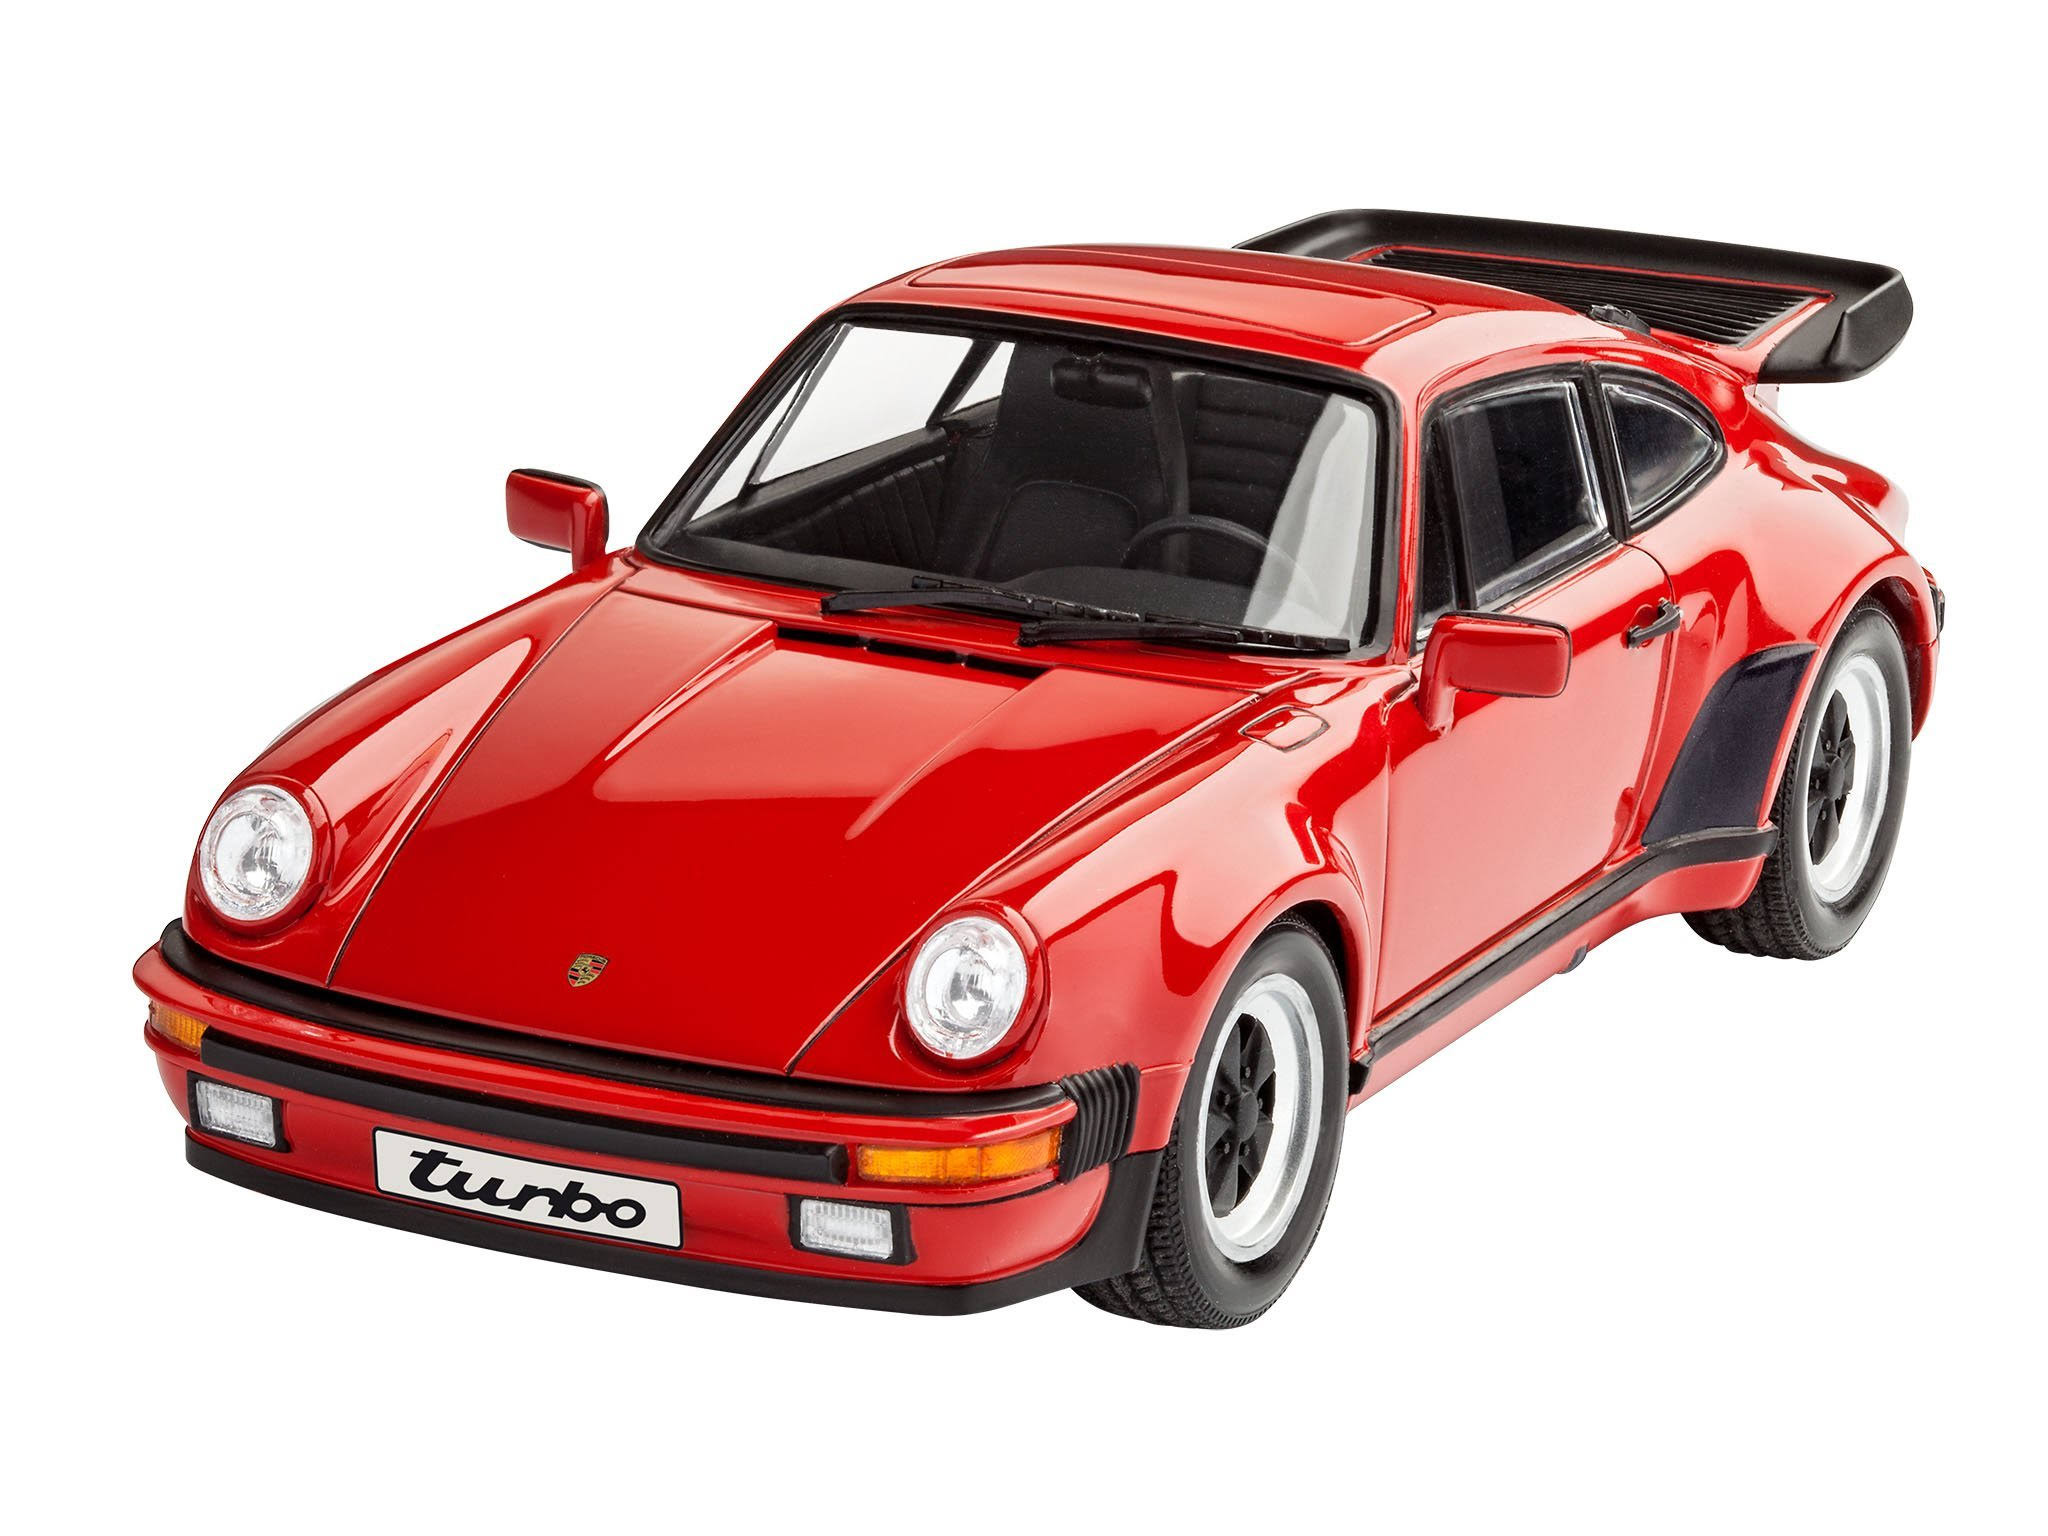 Revell 1:25 Porsche 911 Turbo Model Kit - 07179